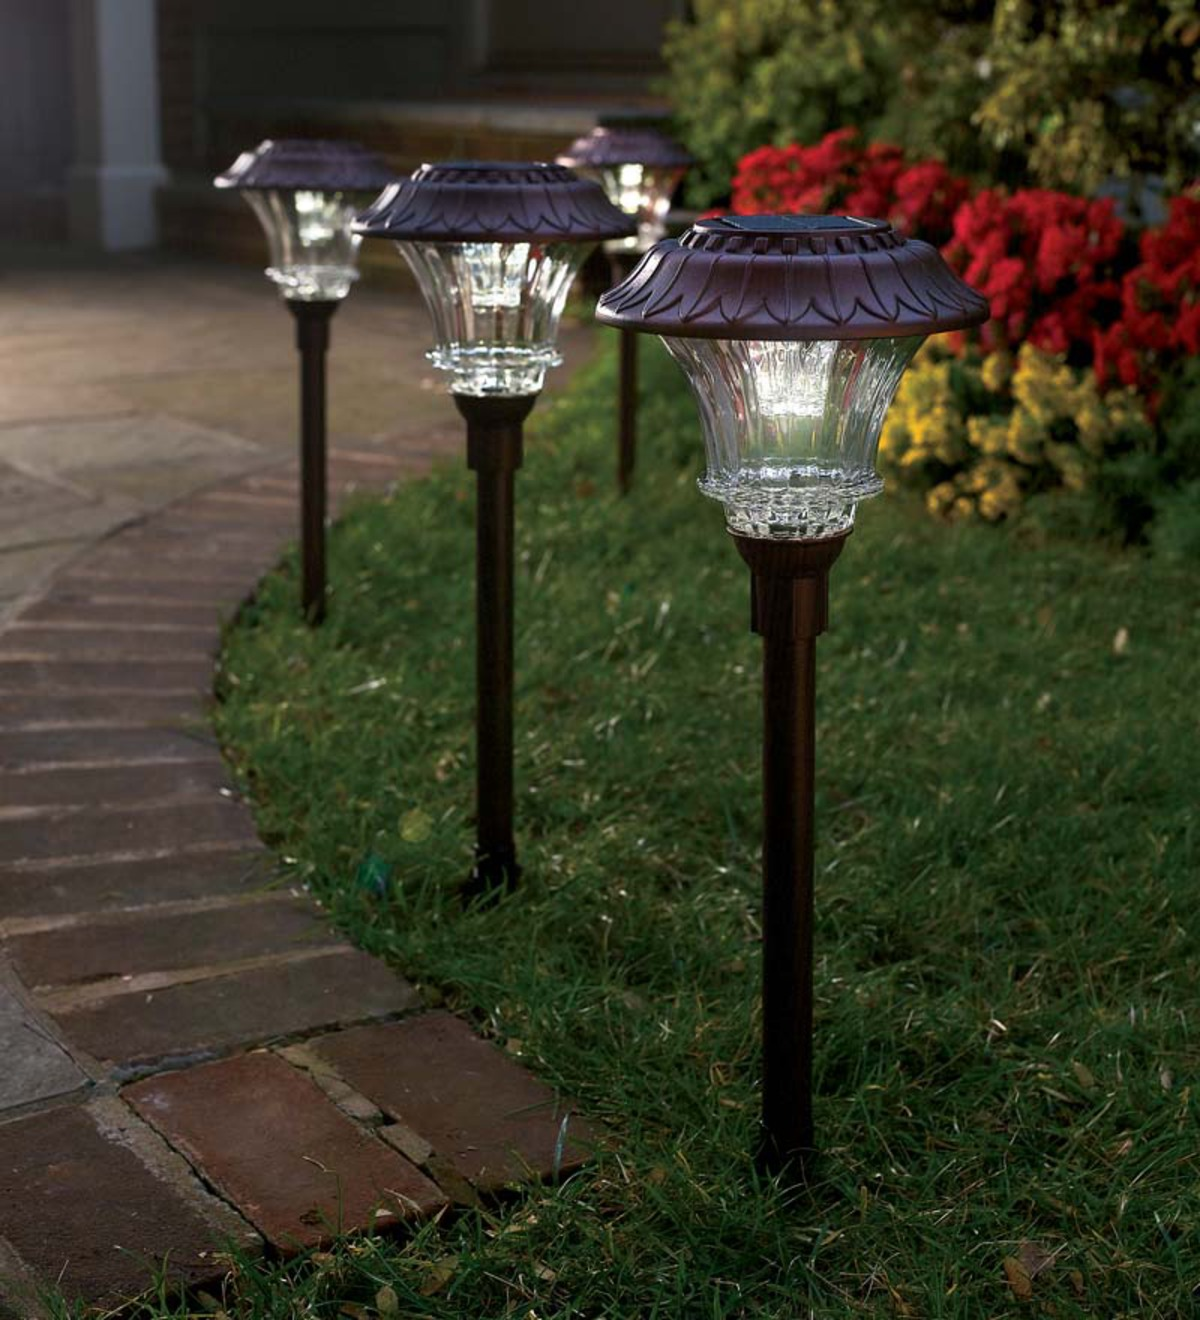 Our Super Bright Solar Led Path Lights